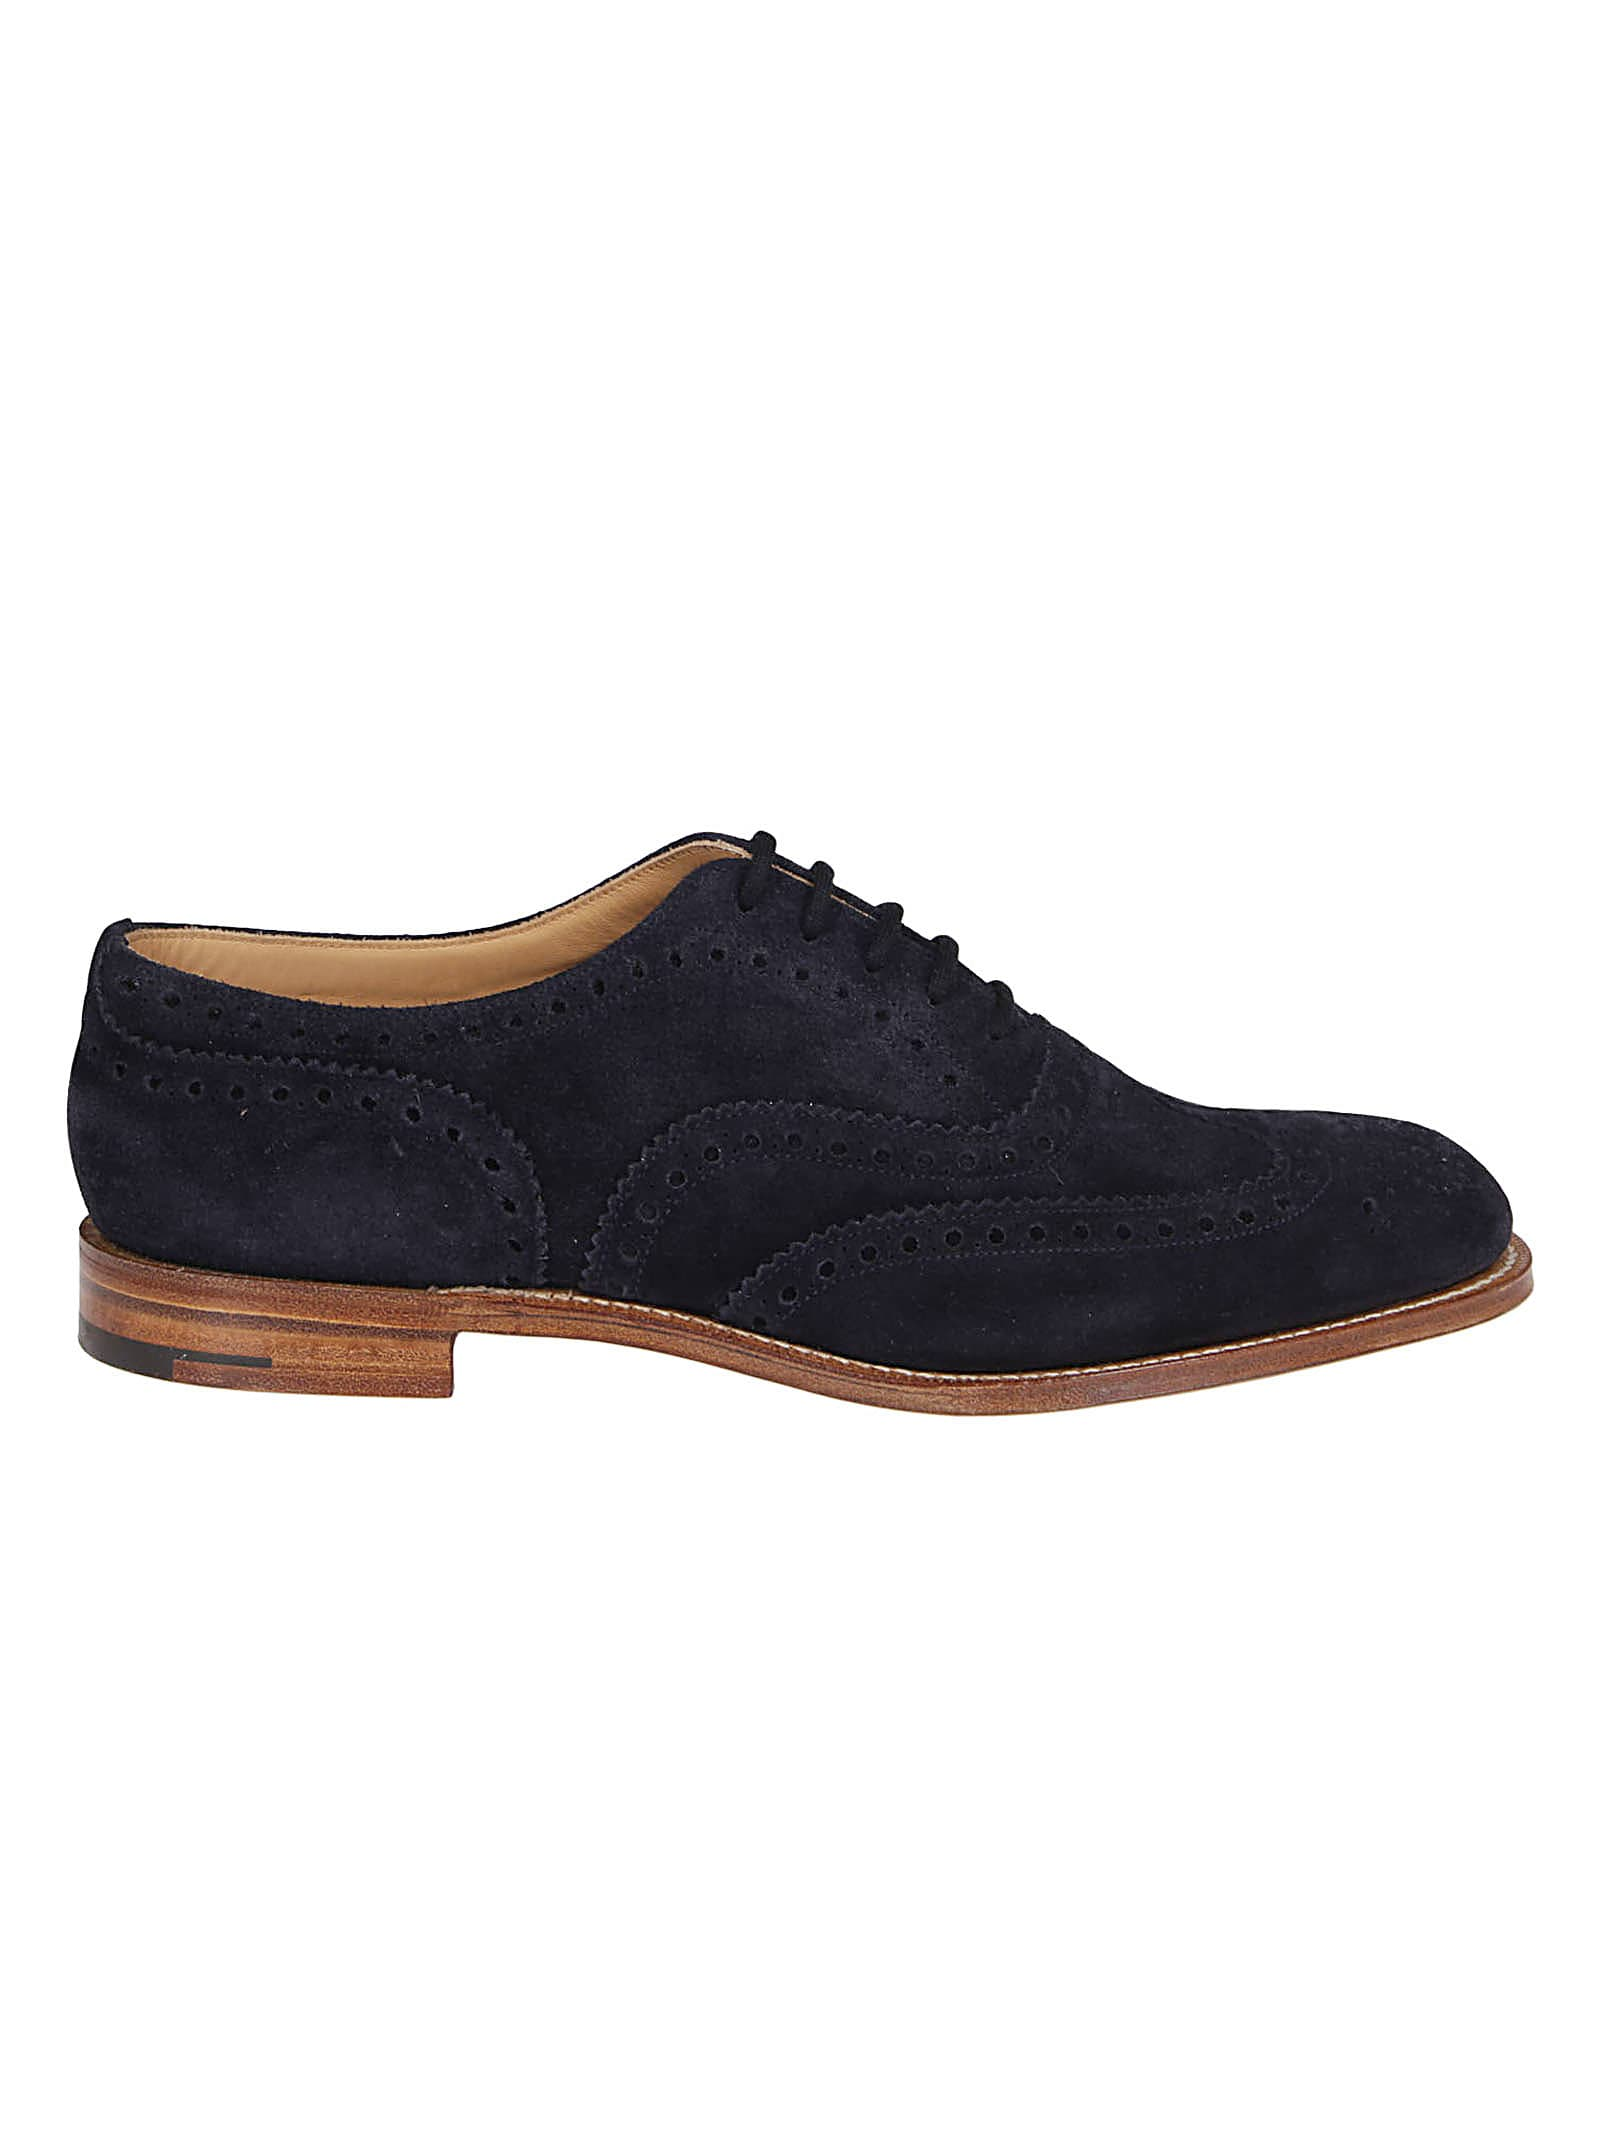 Church's NAVY LEATHER DUXFORD BROGUES